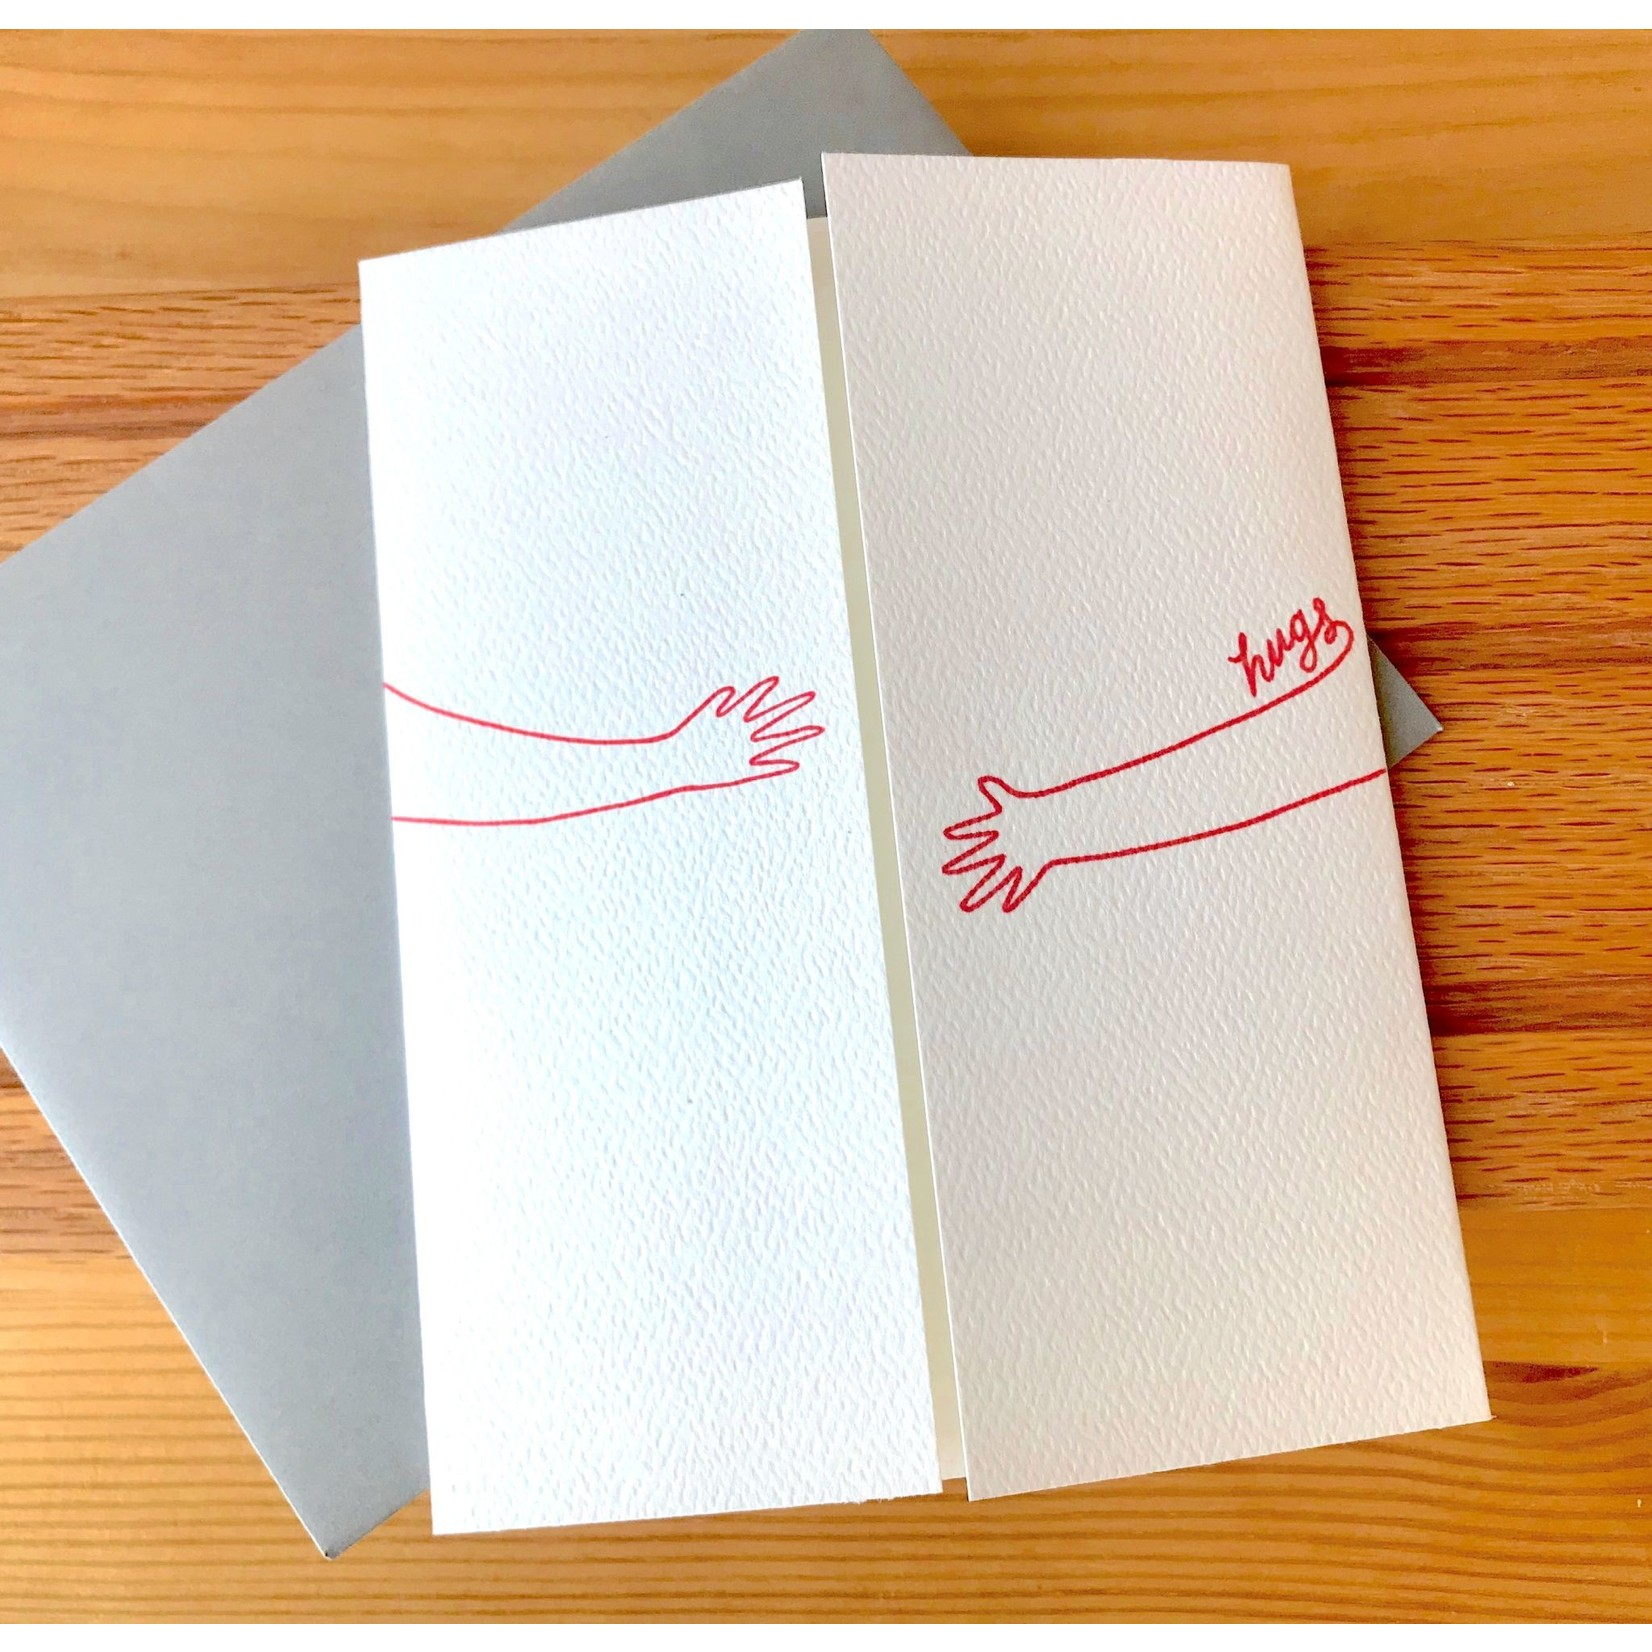 Cracked Designs Open Hugs Greeting Card